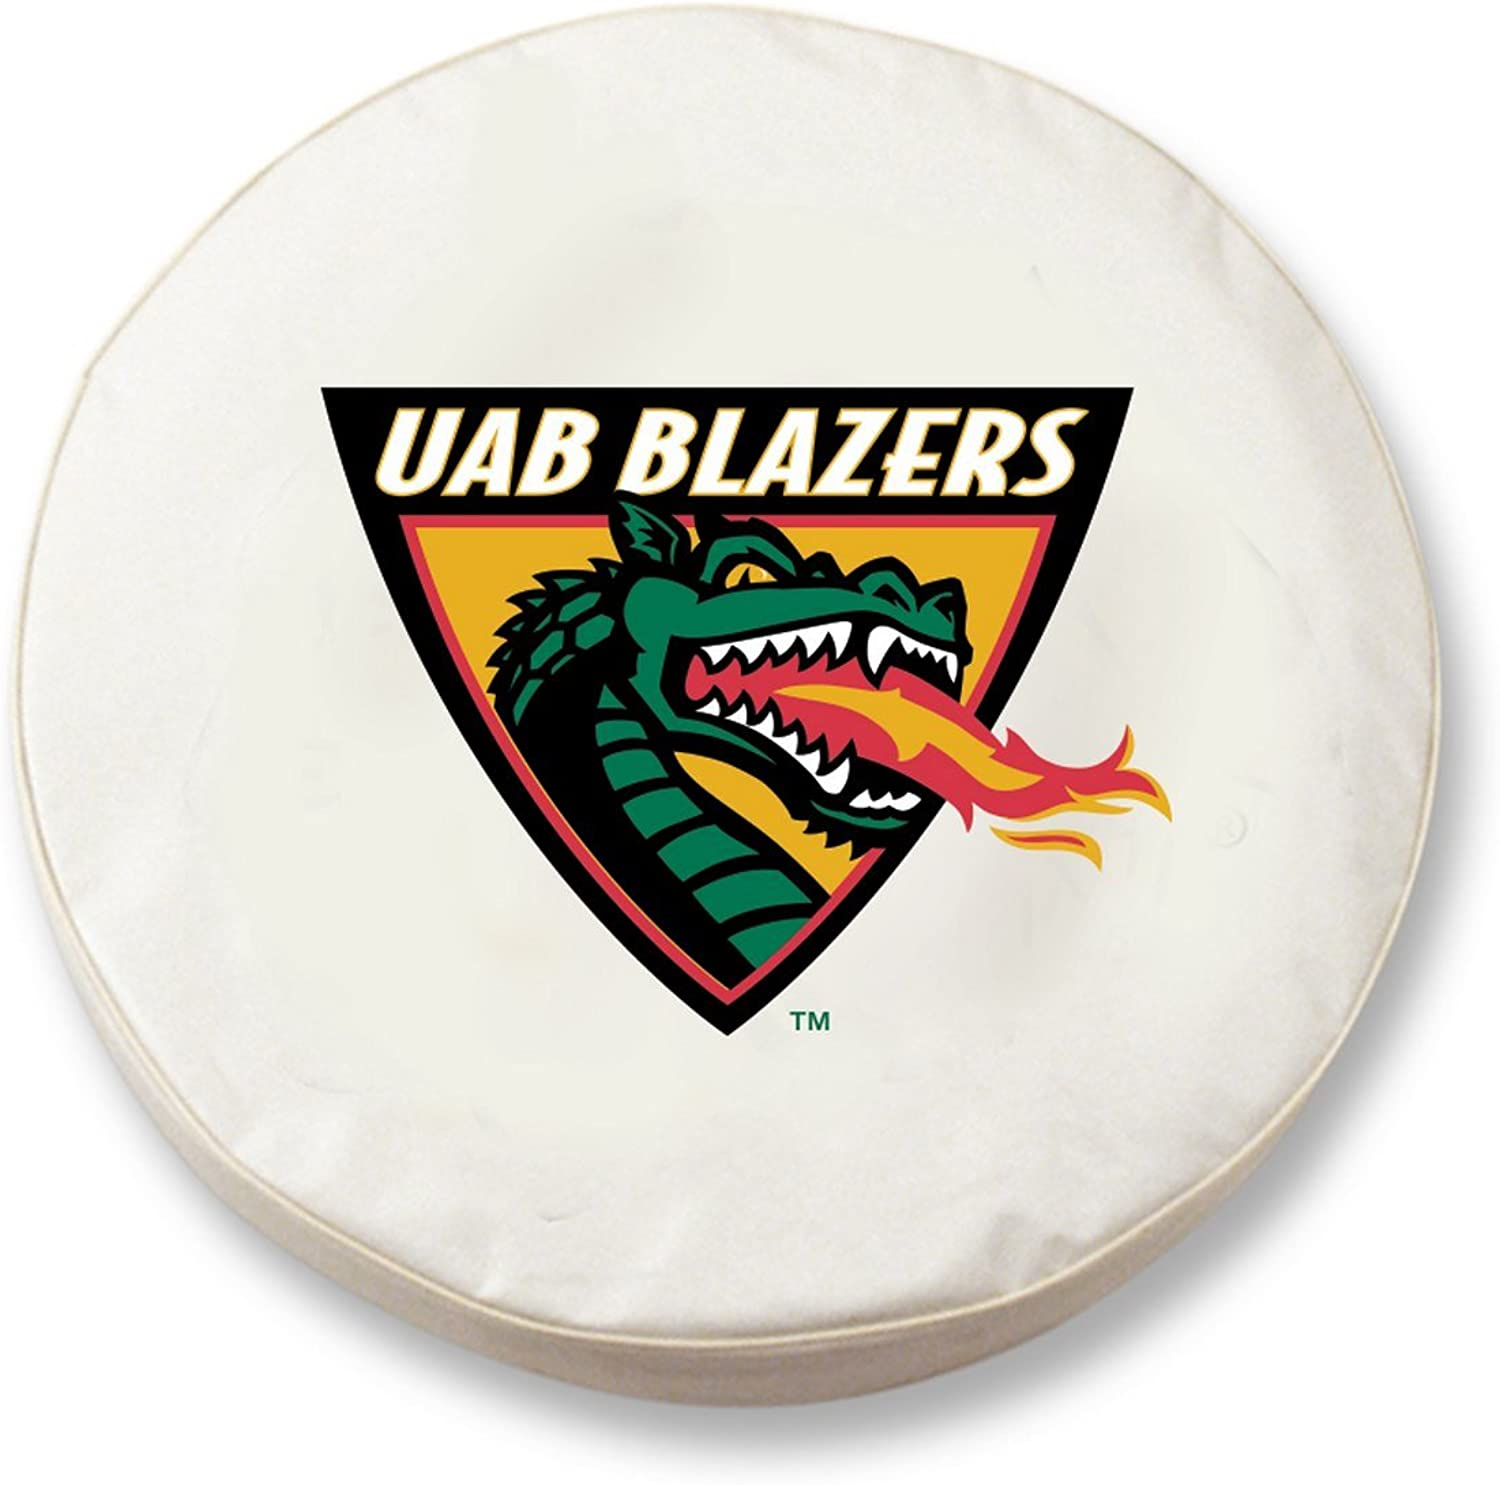 UAB Blazers HBS White Vinyl Fitted Spare Car Tire Cover